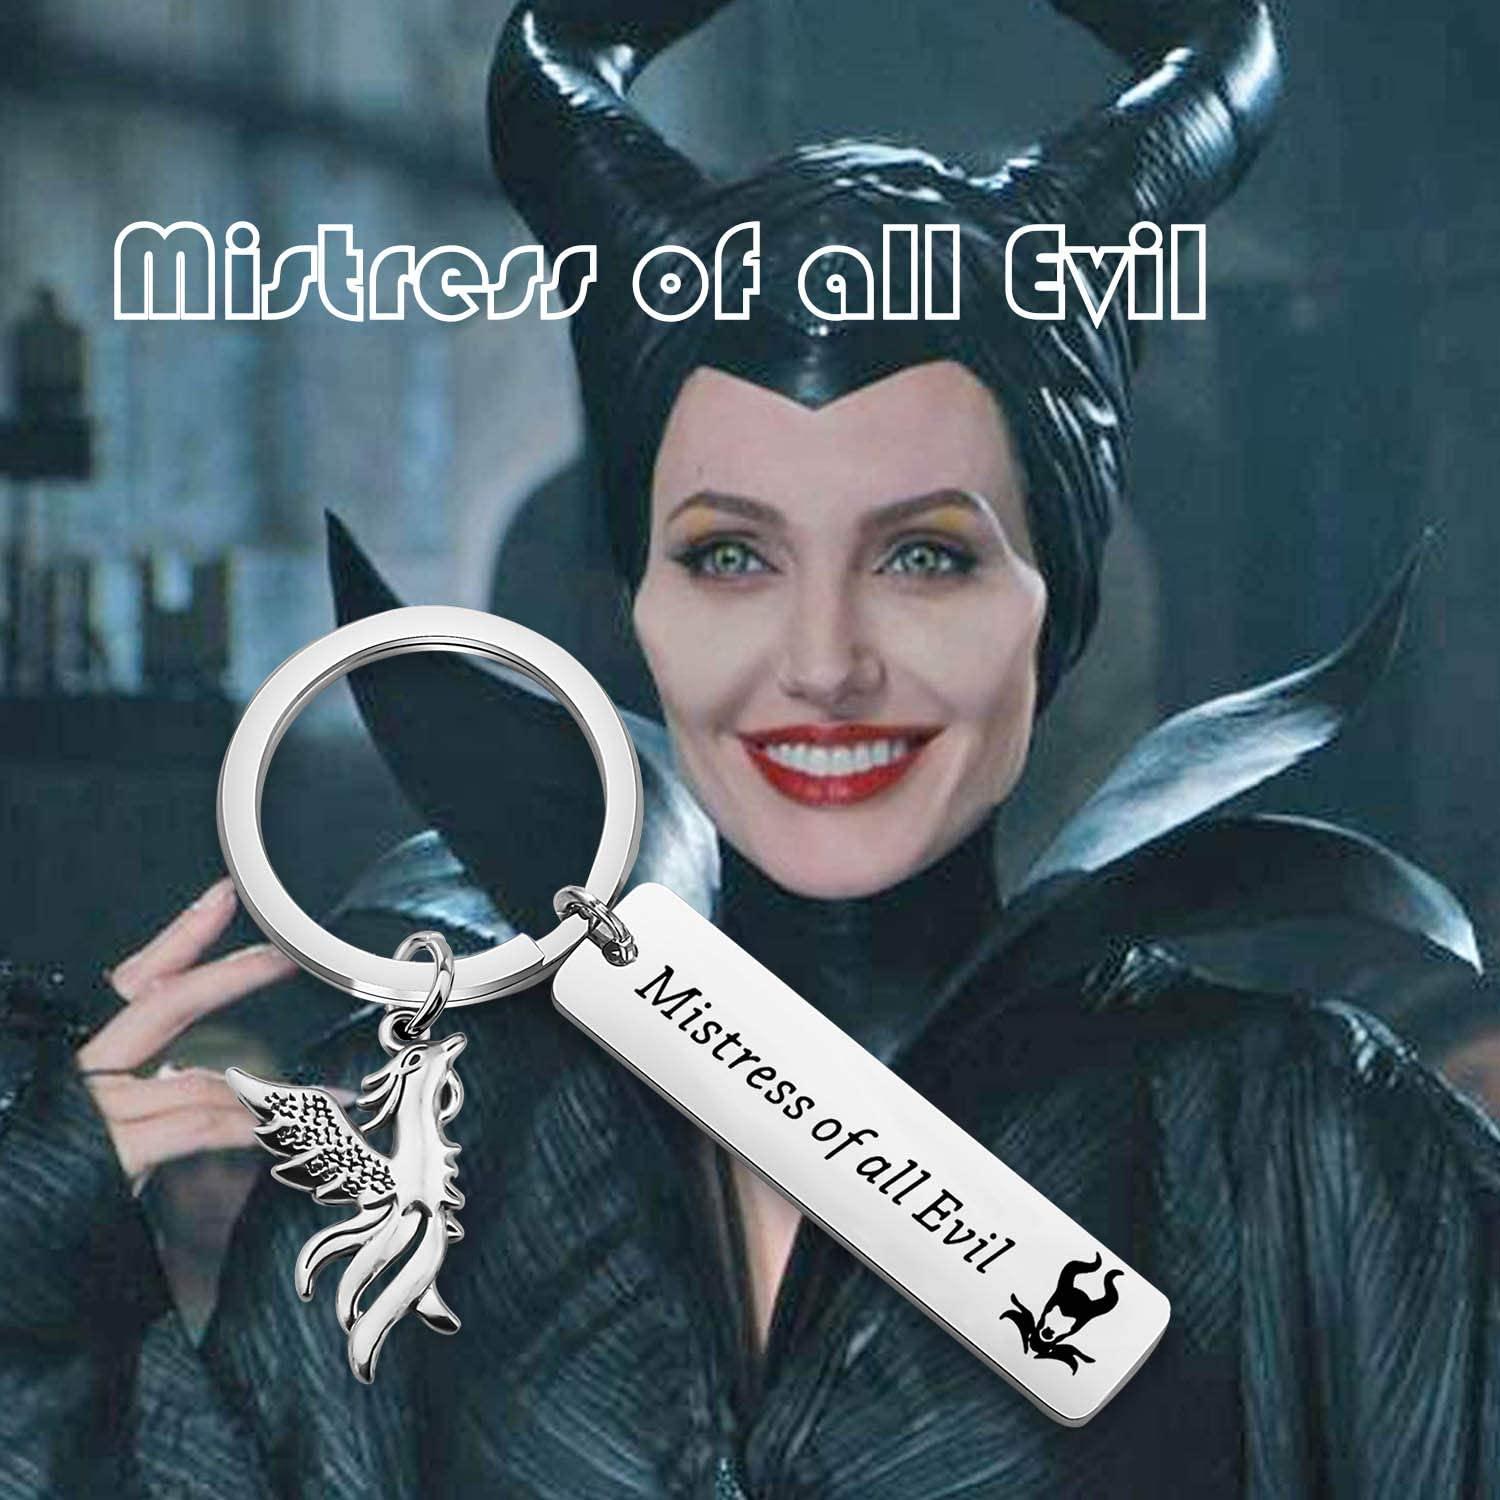 TIIMG Maleficent Inspired Gift Mistress of All Evil Sleeping Princess Fairytale Keychain Gift for Fans Best Friend